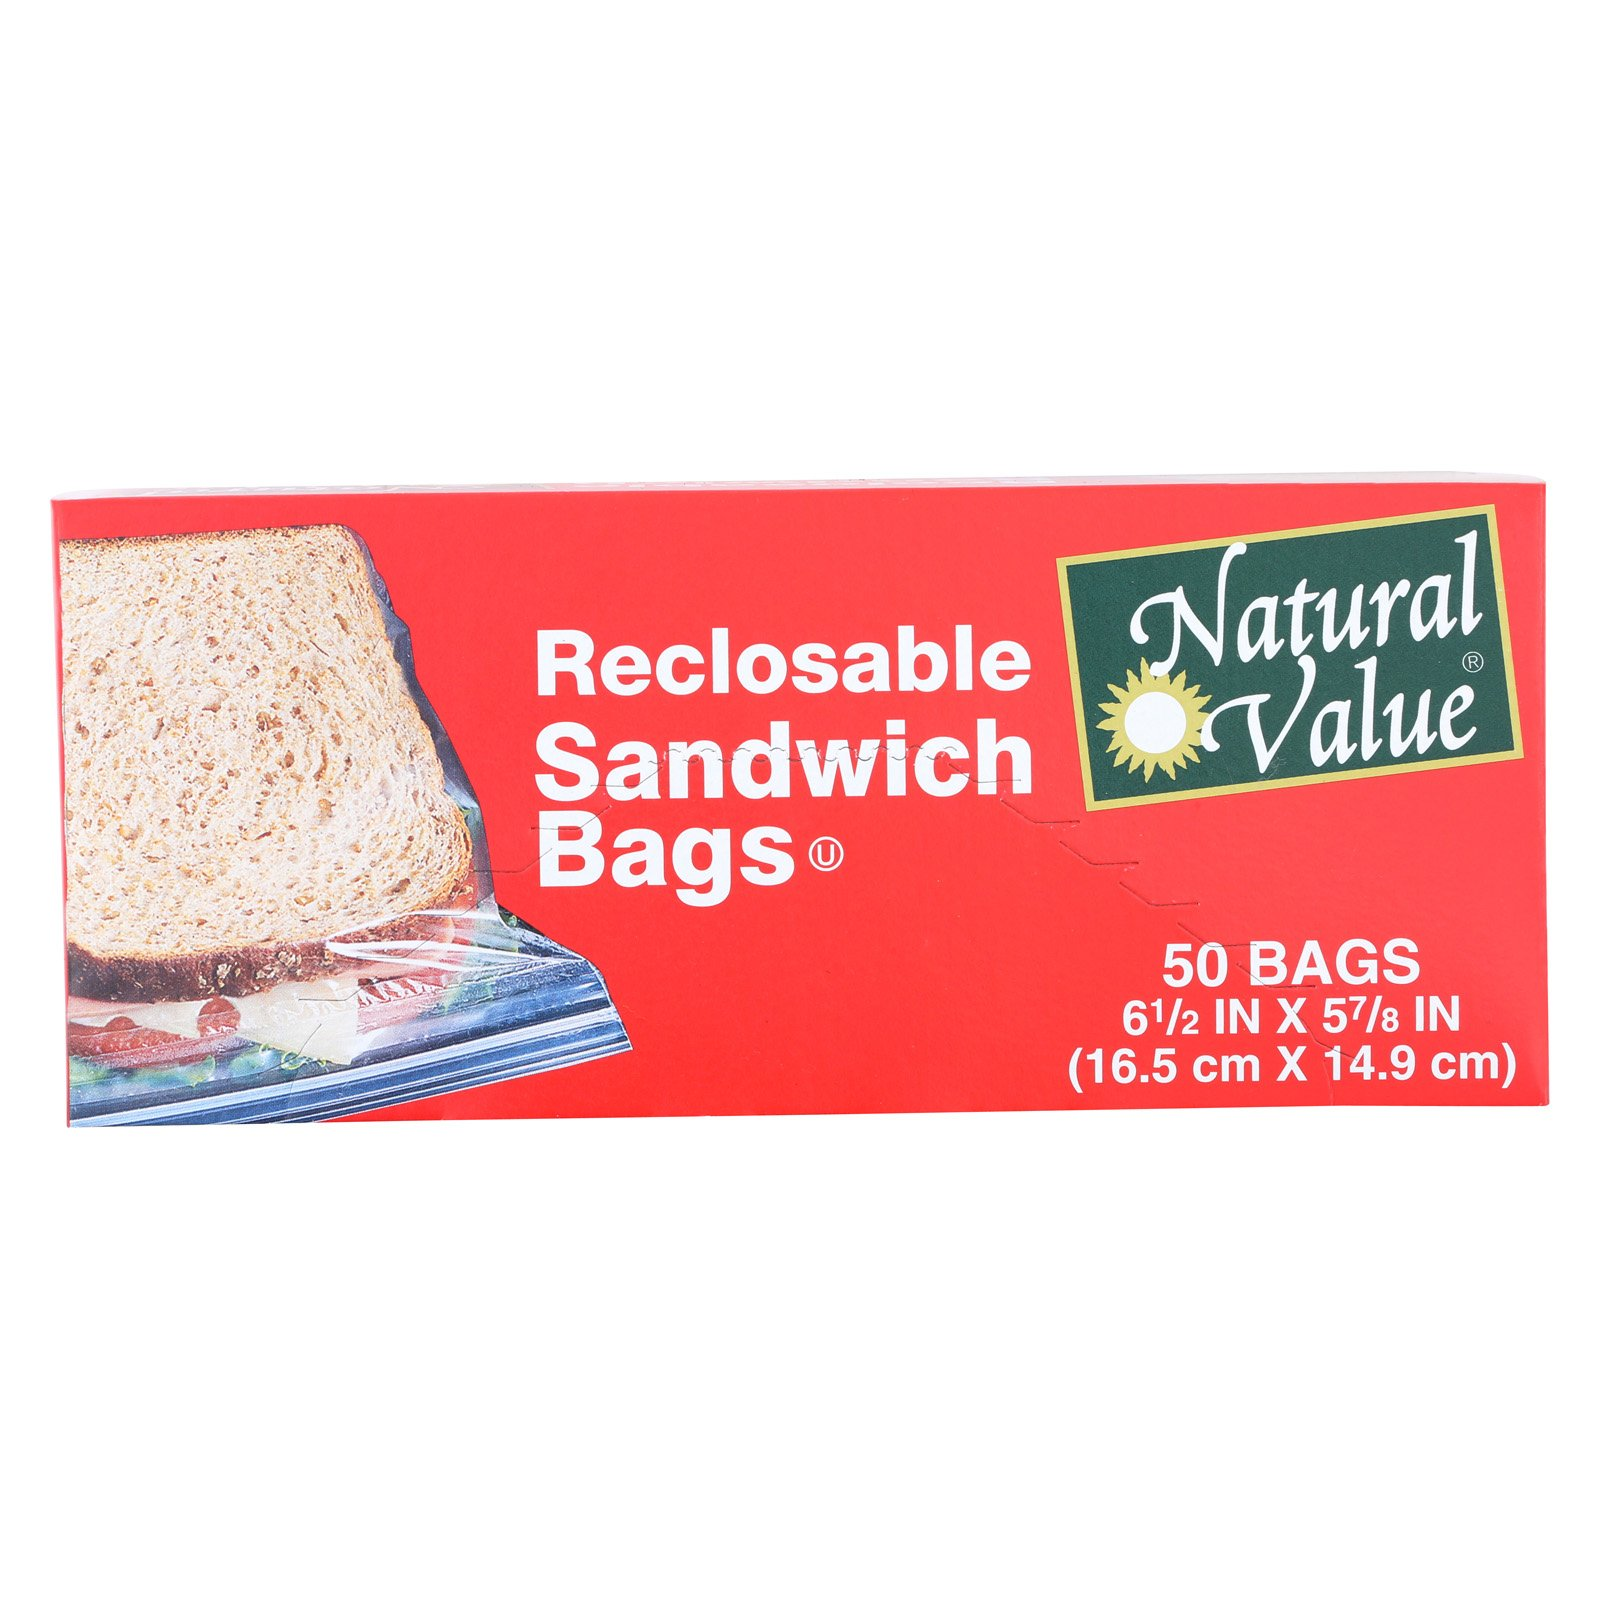 Natural Value Reclosable Sandwich Bags - Case of 12-50 Count